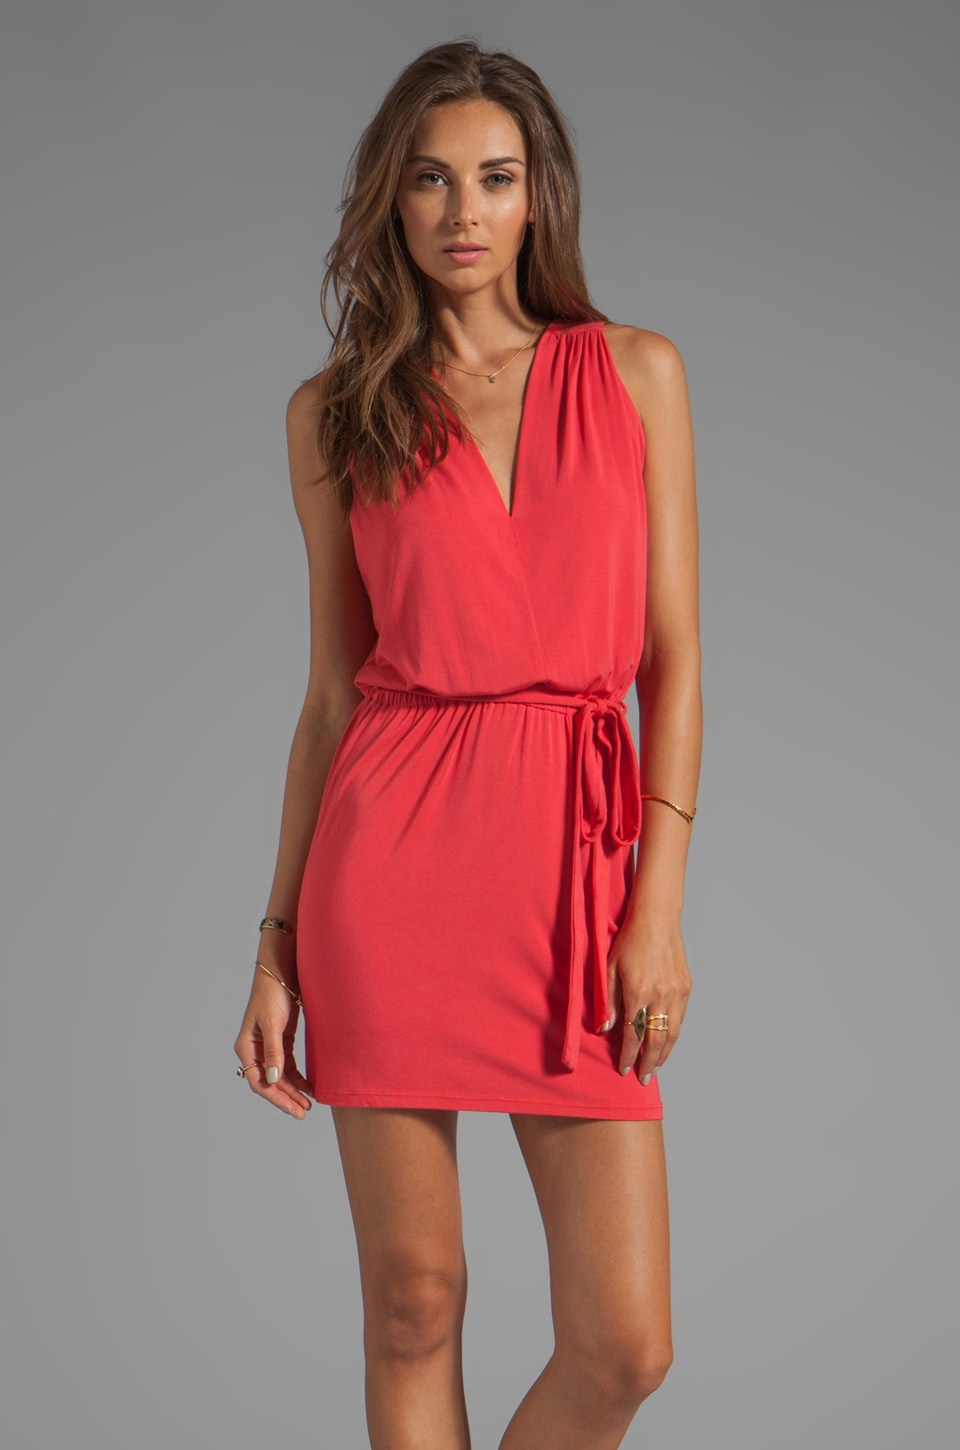 krisa Reverse Surplice Back Mini Dress in Fire